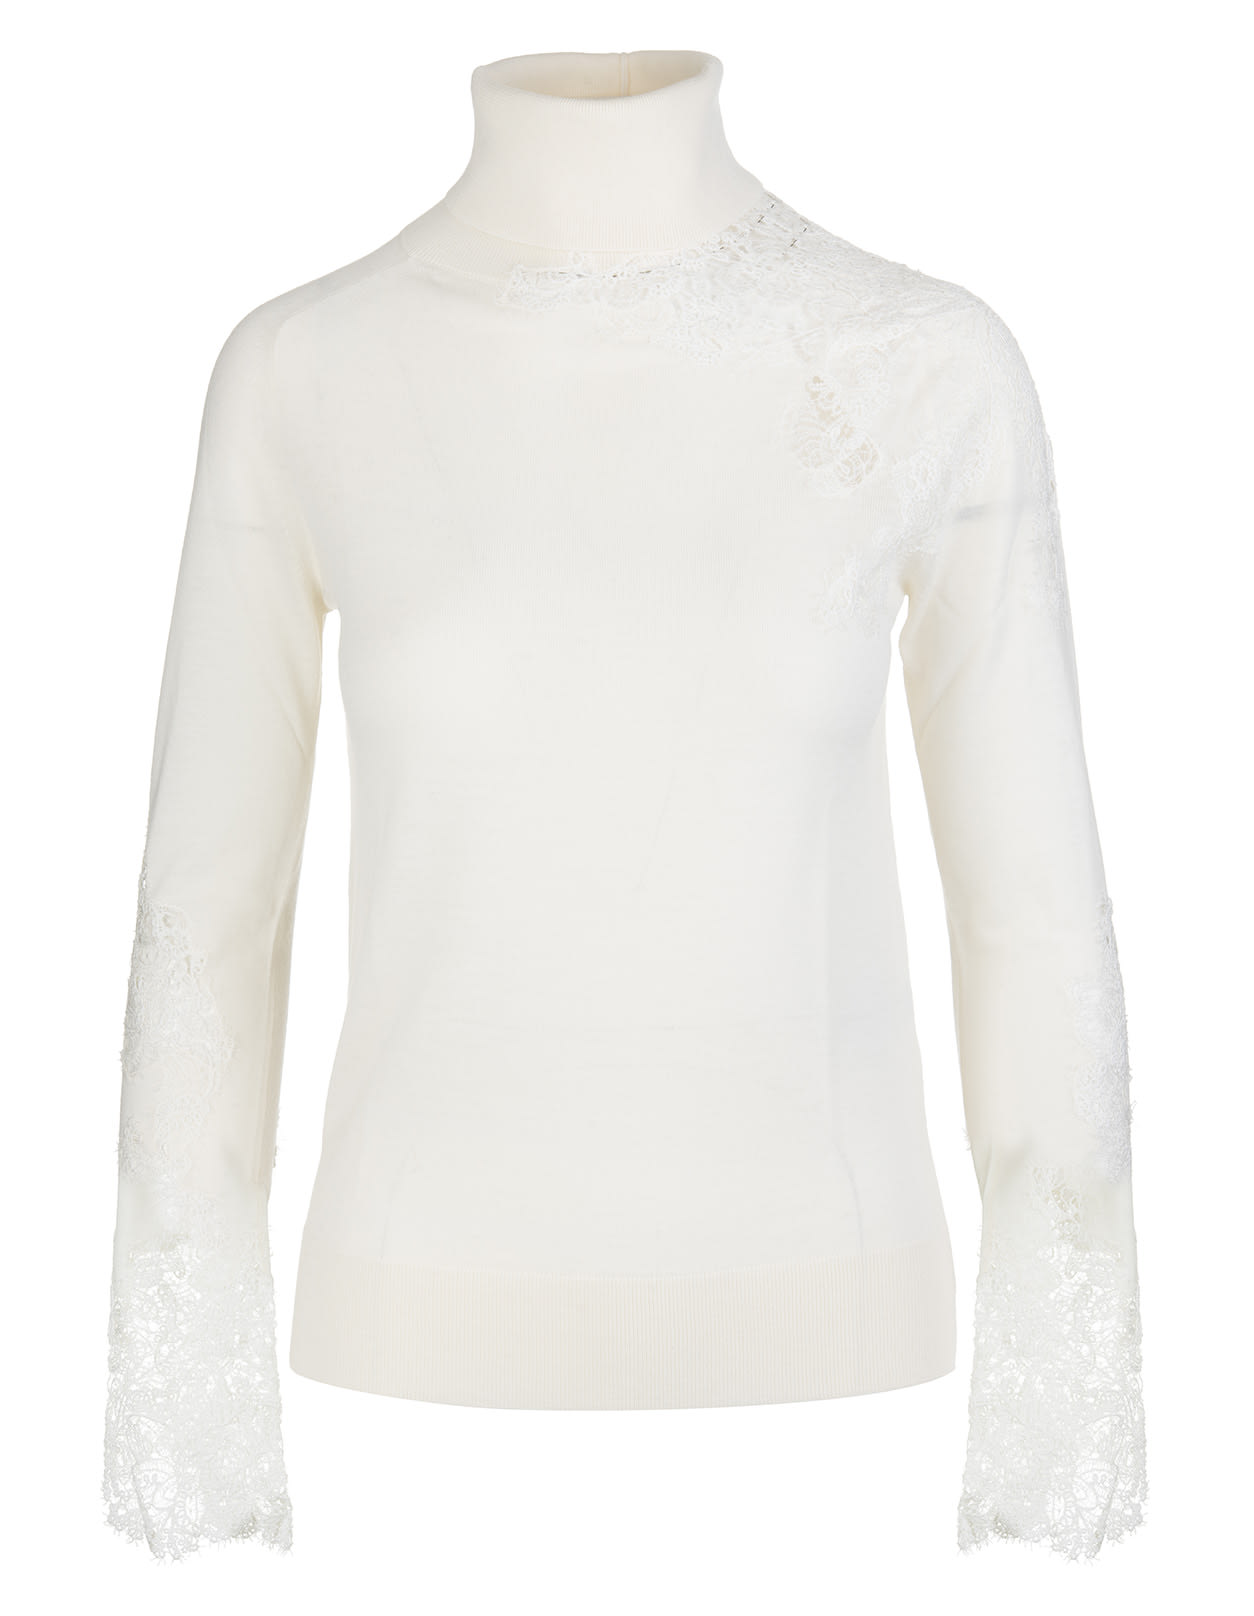 White High Neck Sweater In Wool And Lace